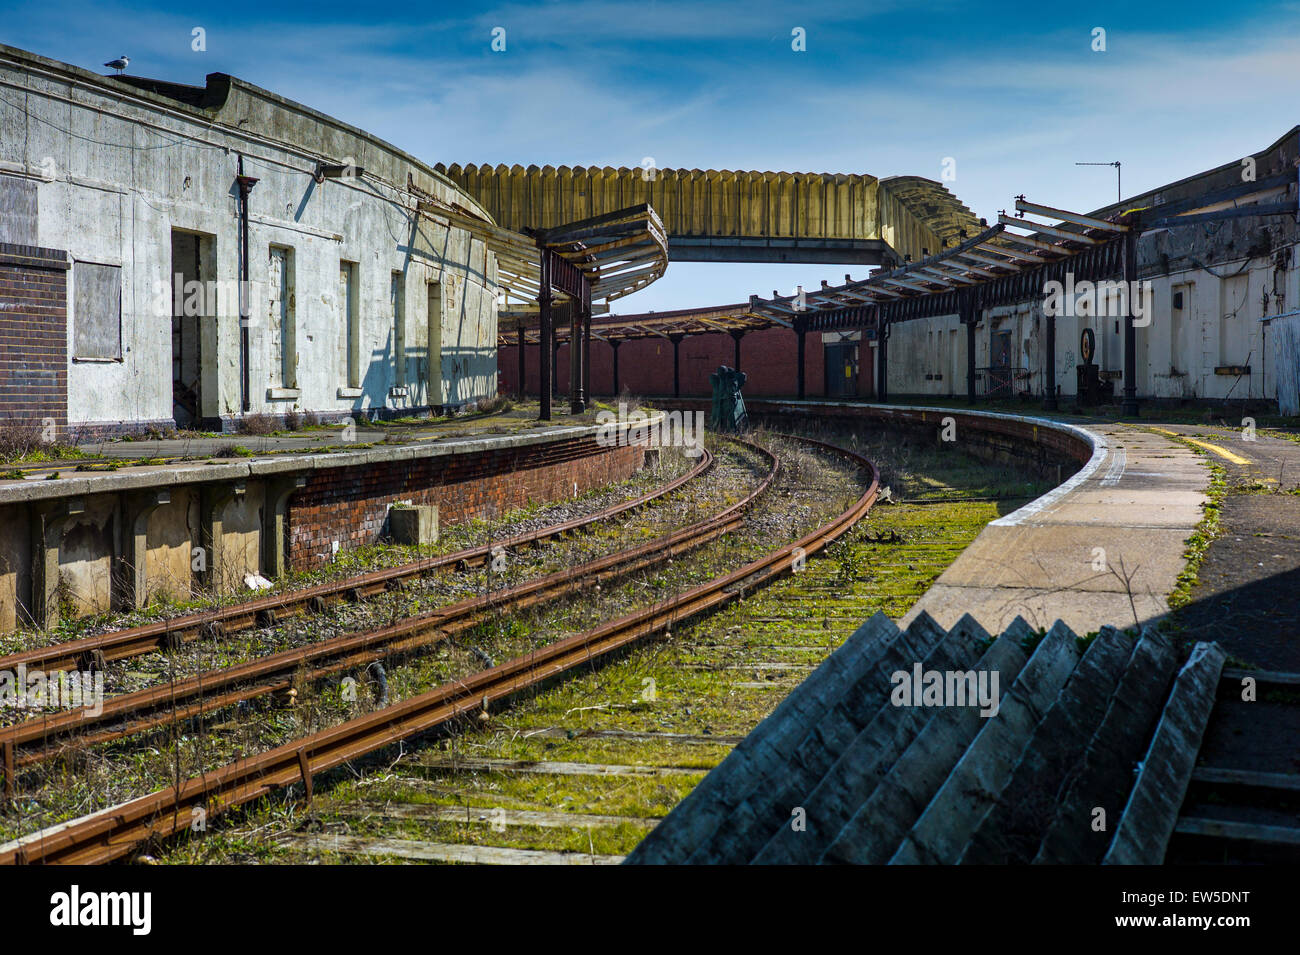 Disused Railway Station at Folkestone Kent - Stock Image